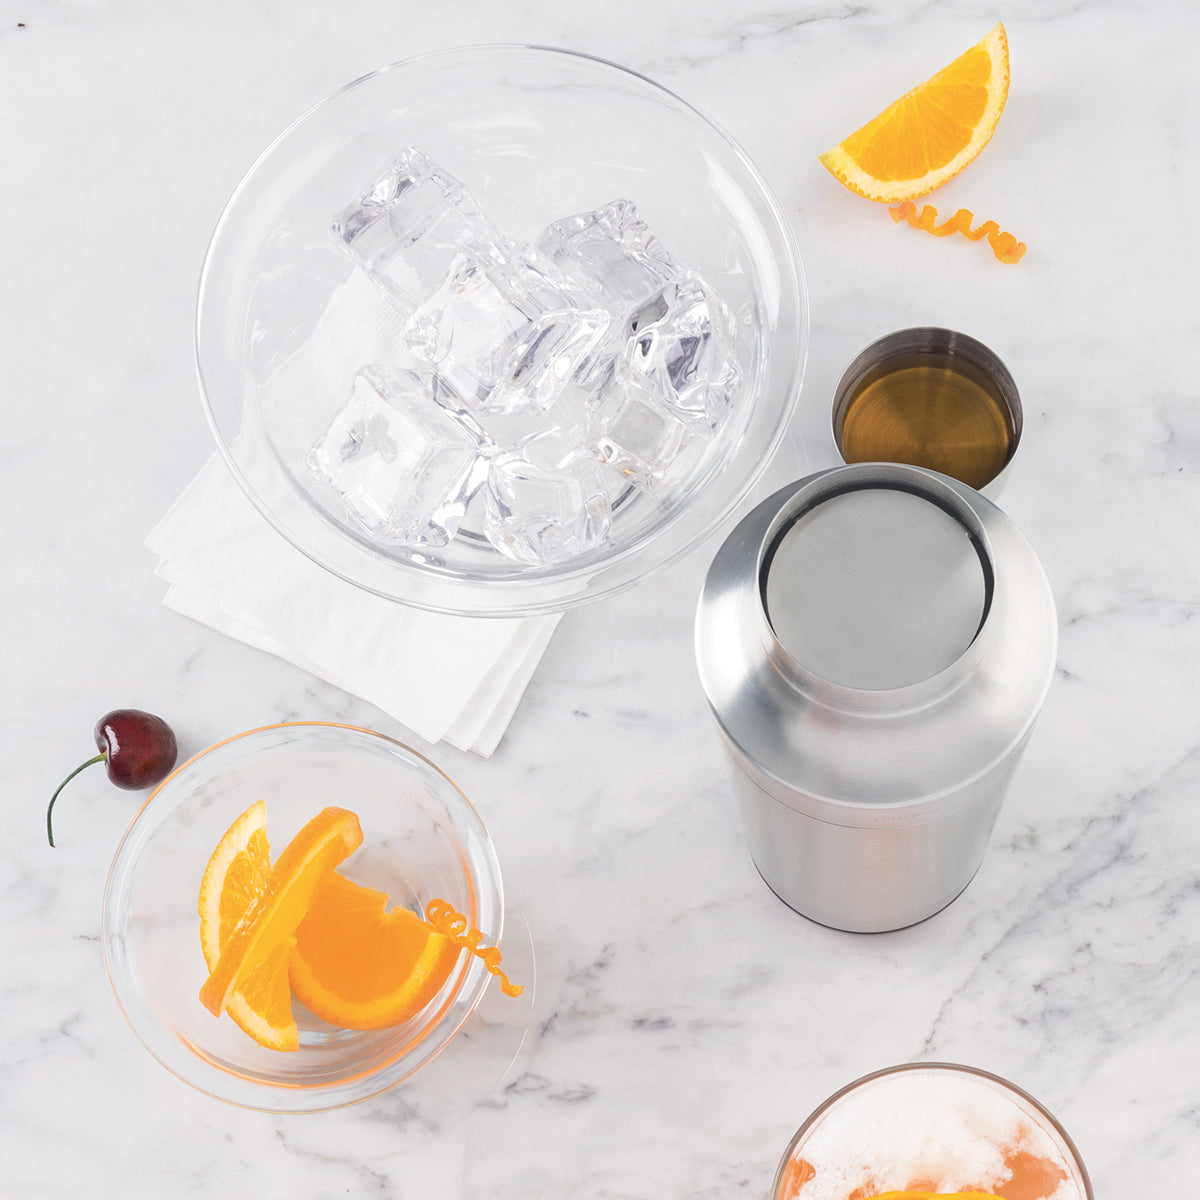 ORIGIN Shaker cocktail